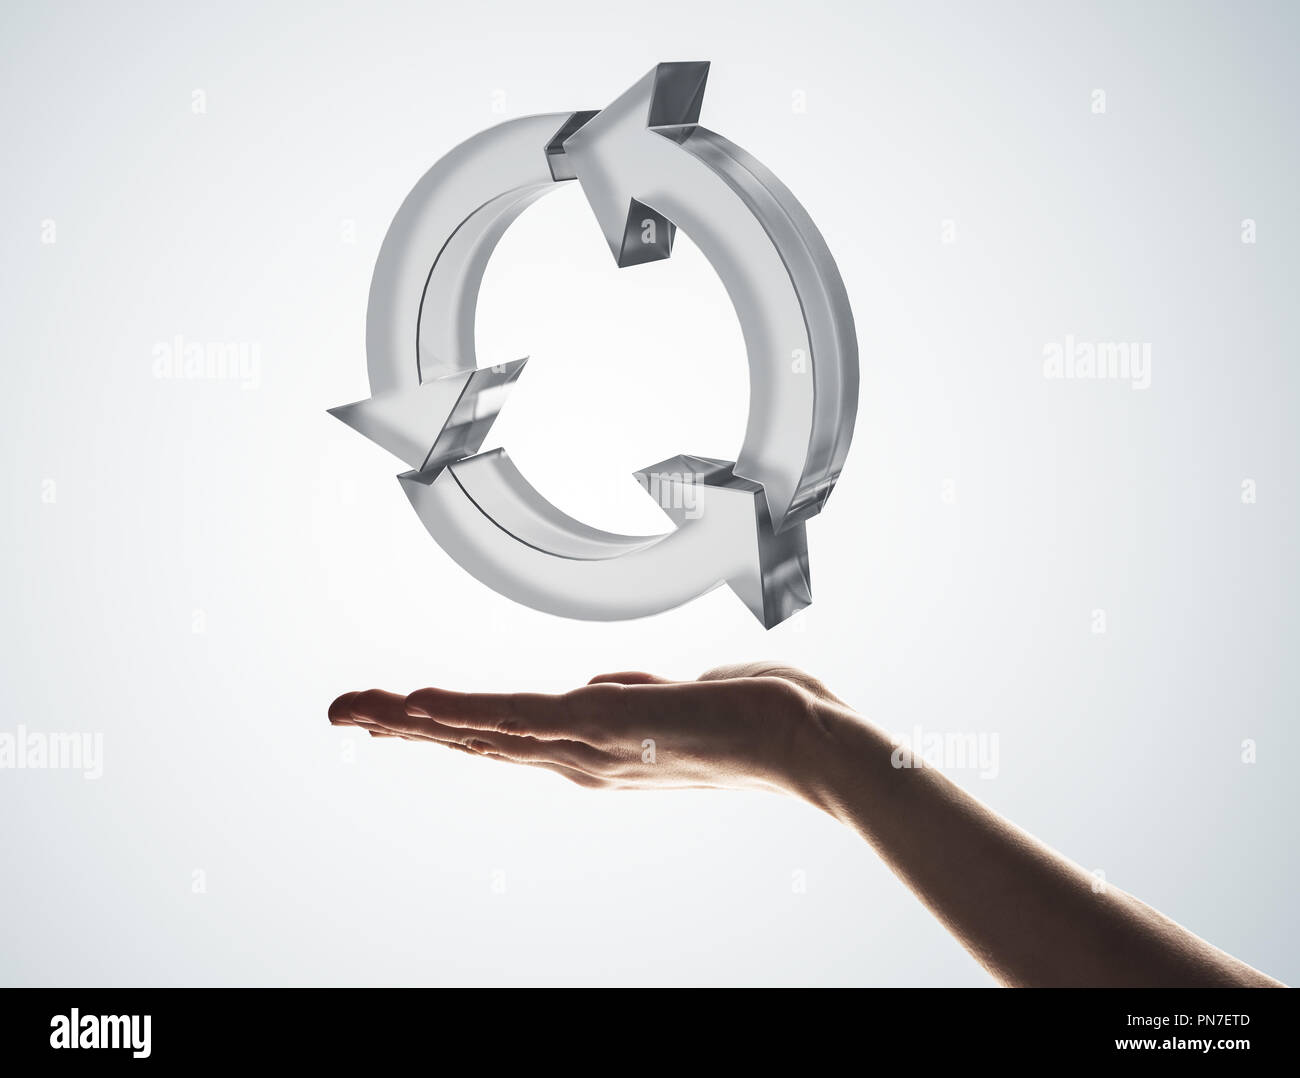 Concept of reuse and recycle presented by glass icon in palm - Stock Image